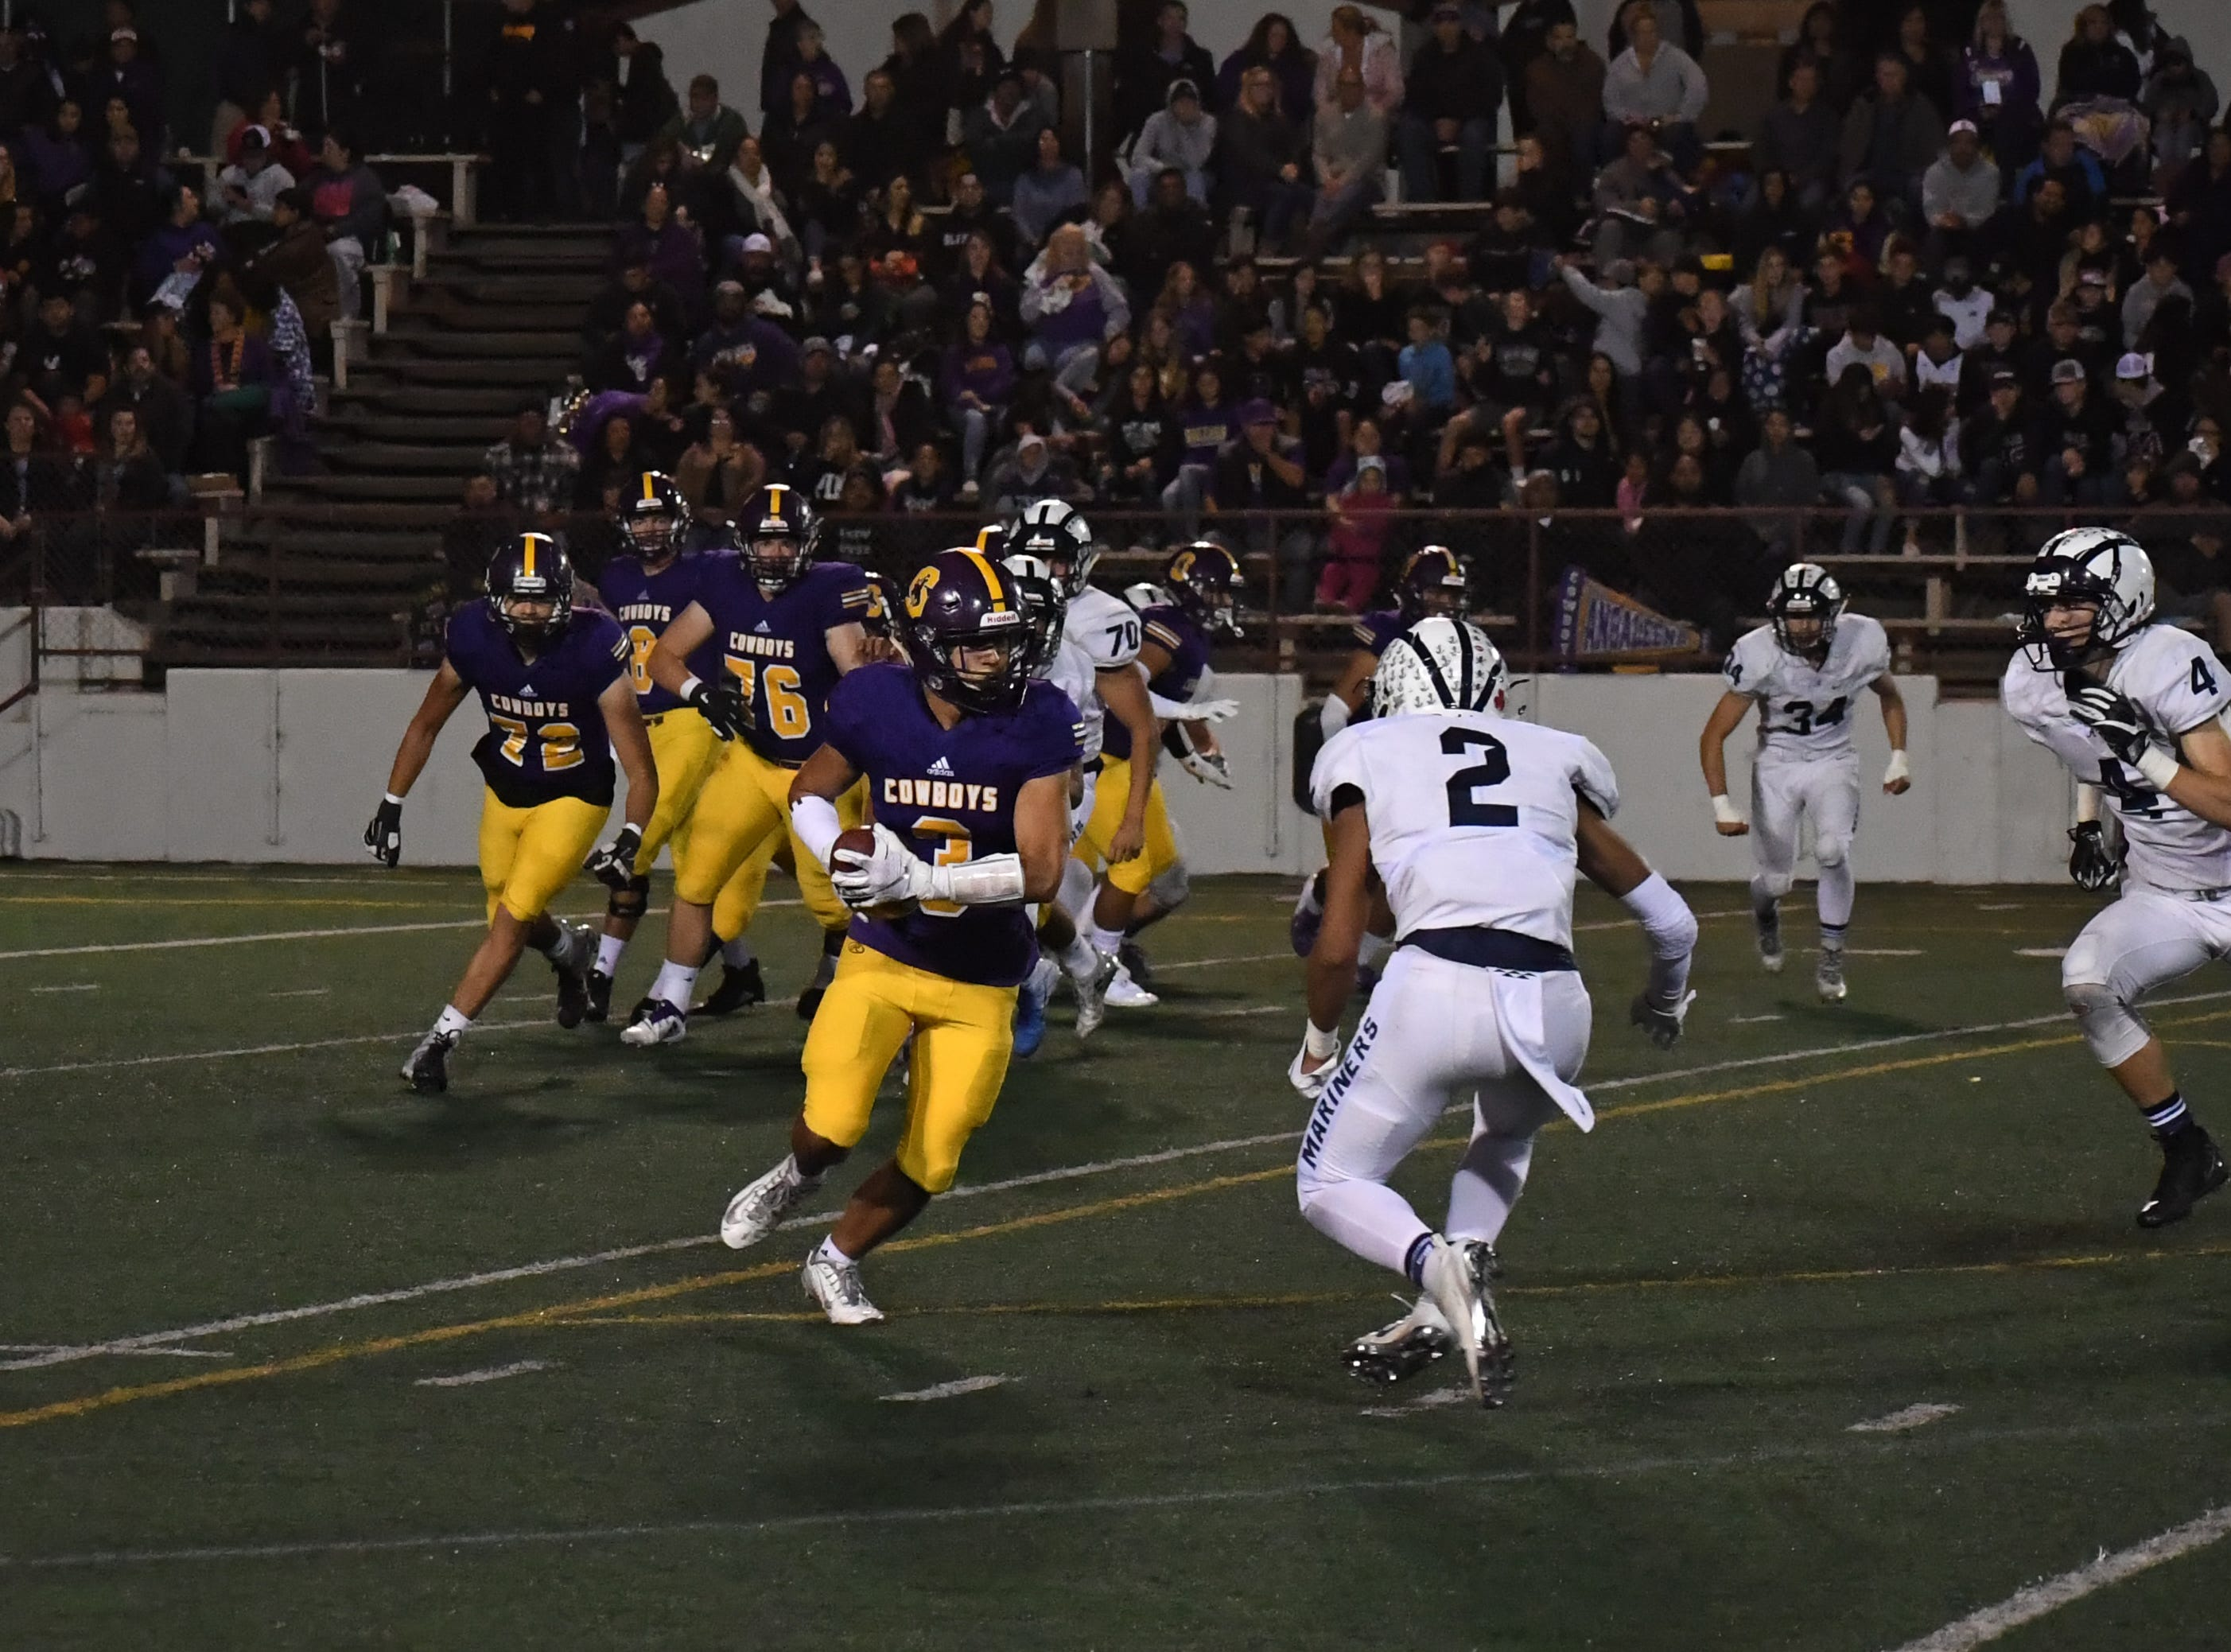 Salinas wide receiver John Mendalla (3) catches a screen pass and looks upfield.